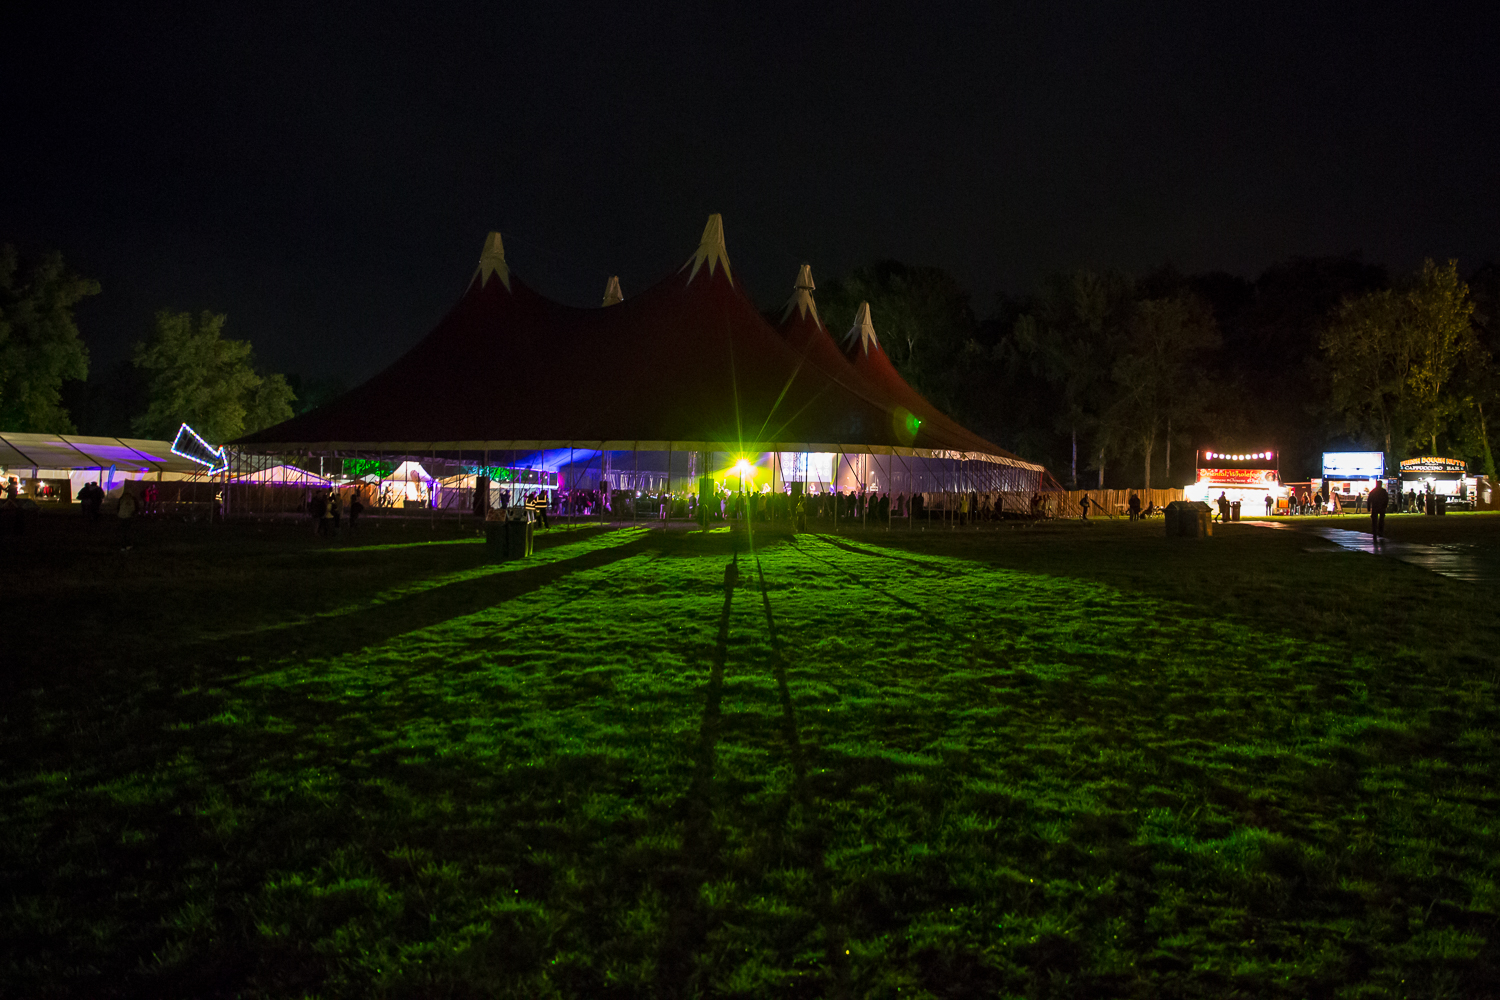 Glade Stage at night